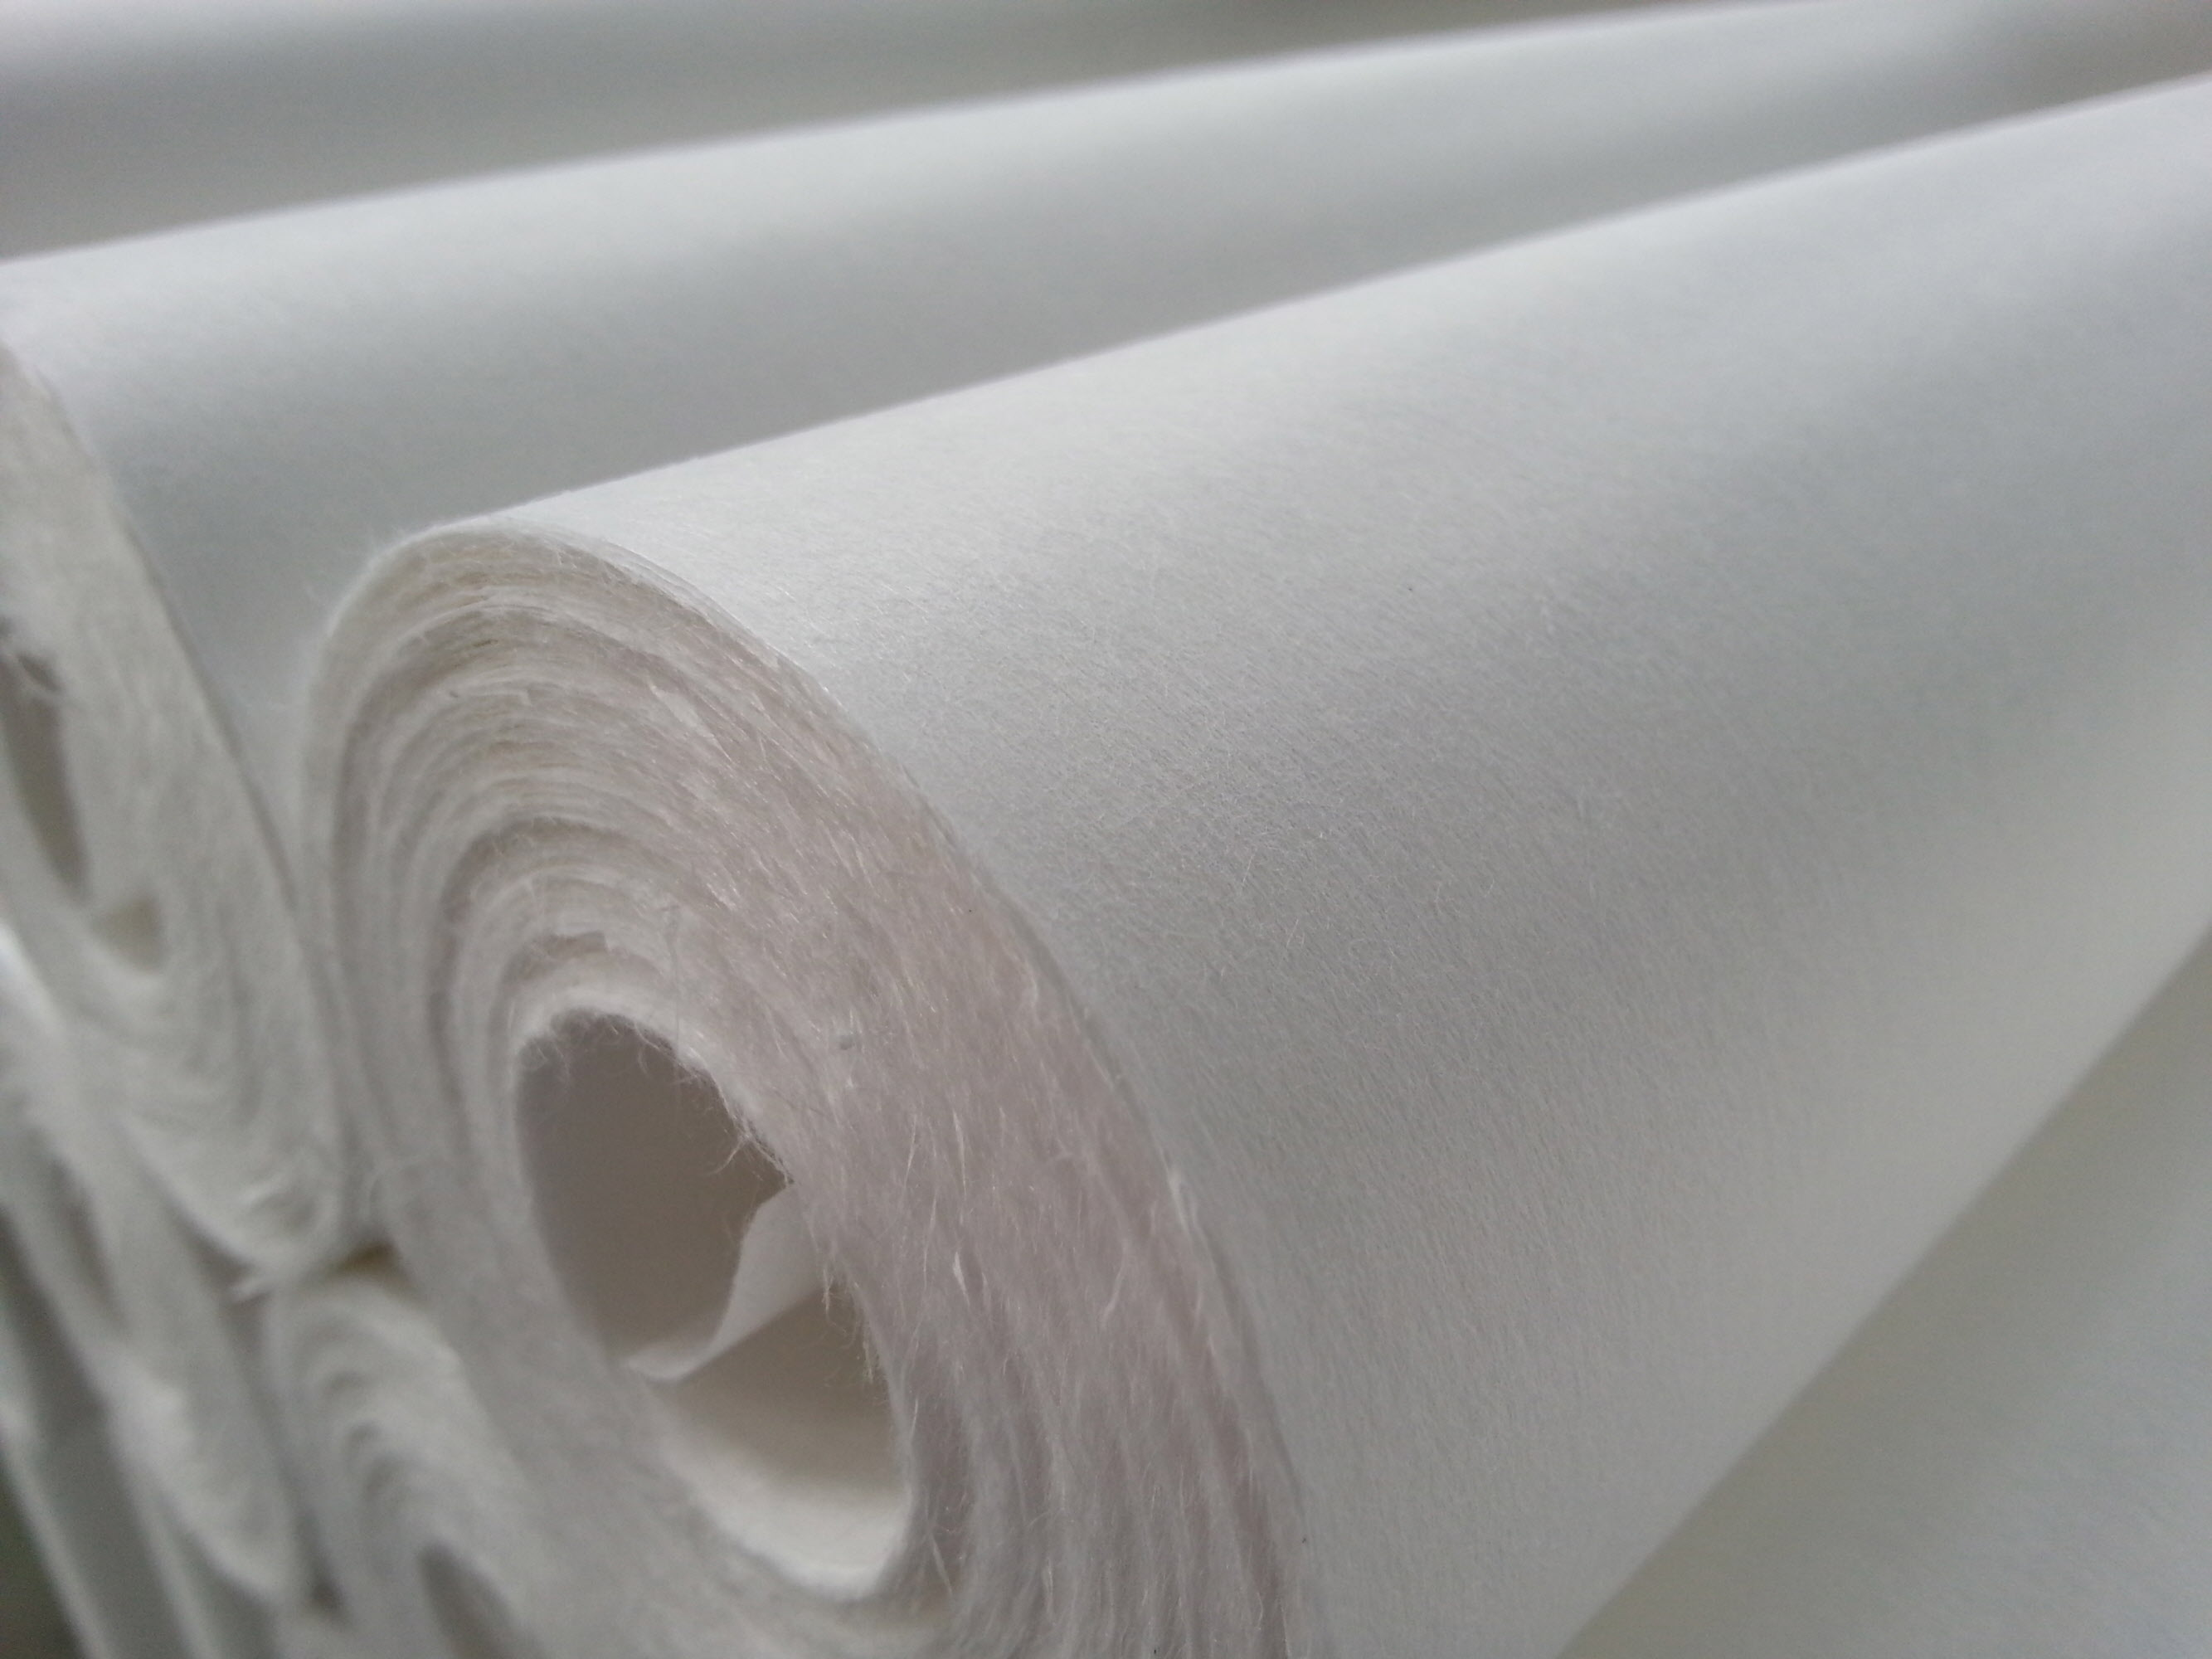 lining paper Acidfree lining paper this moderately heavy lining paper is certified acid free (integrated paper service) and should be used any time longevity is a goal.